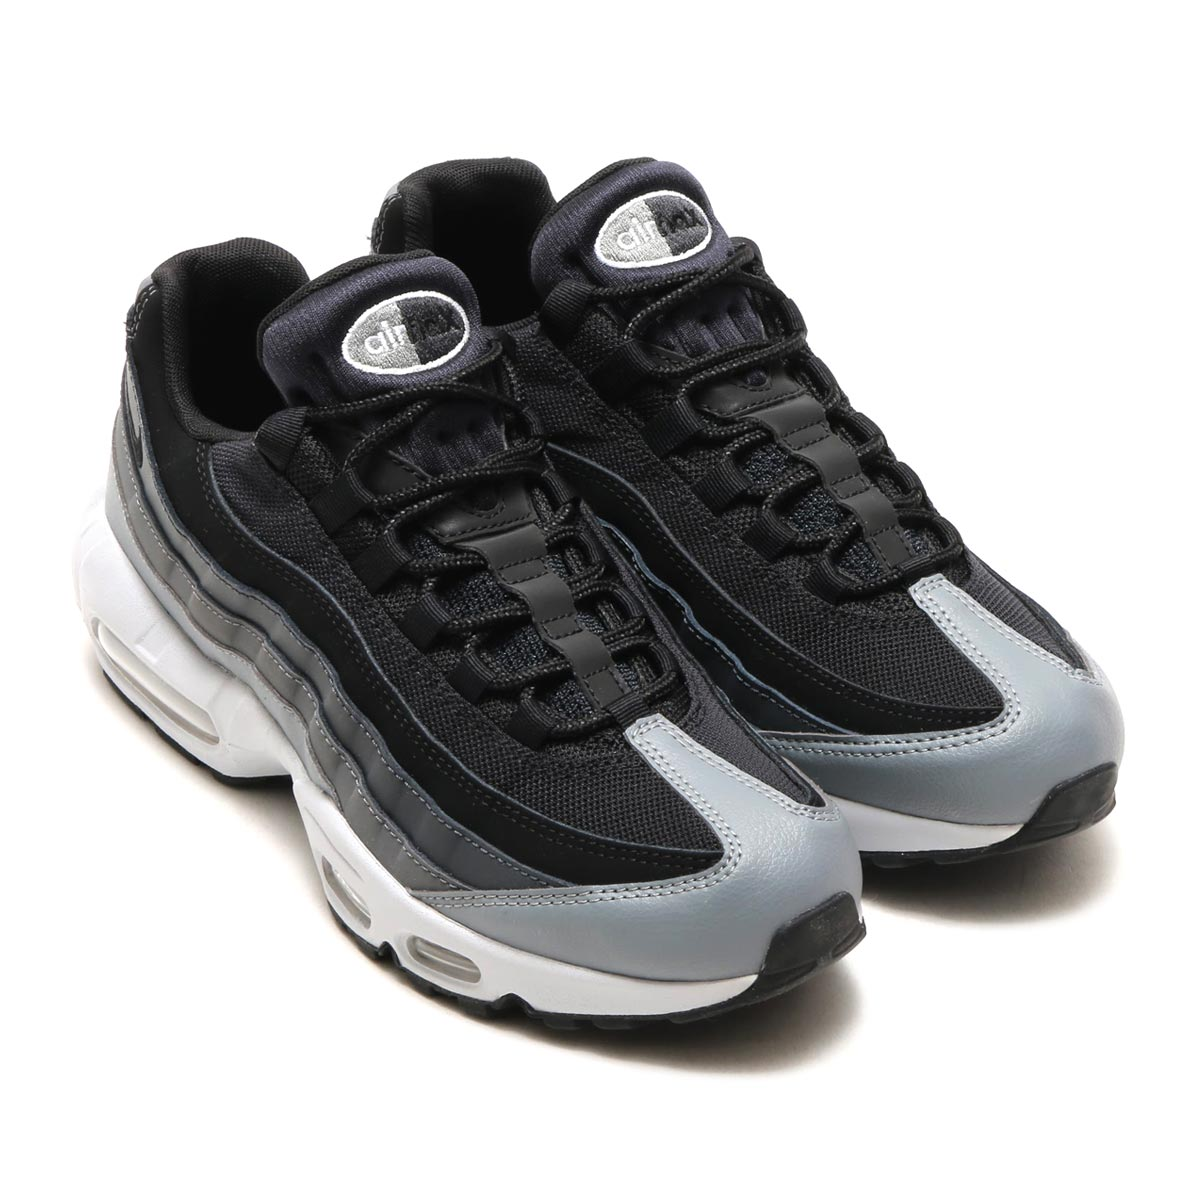 buy online 0a262 44c5c The Air Max running product which inspire made the early 90s.